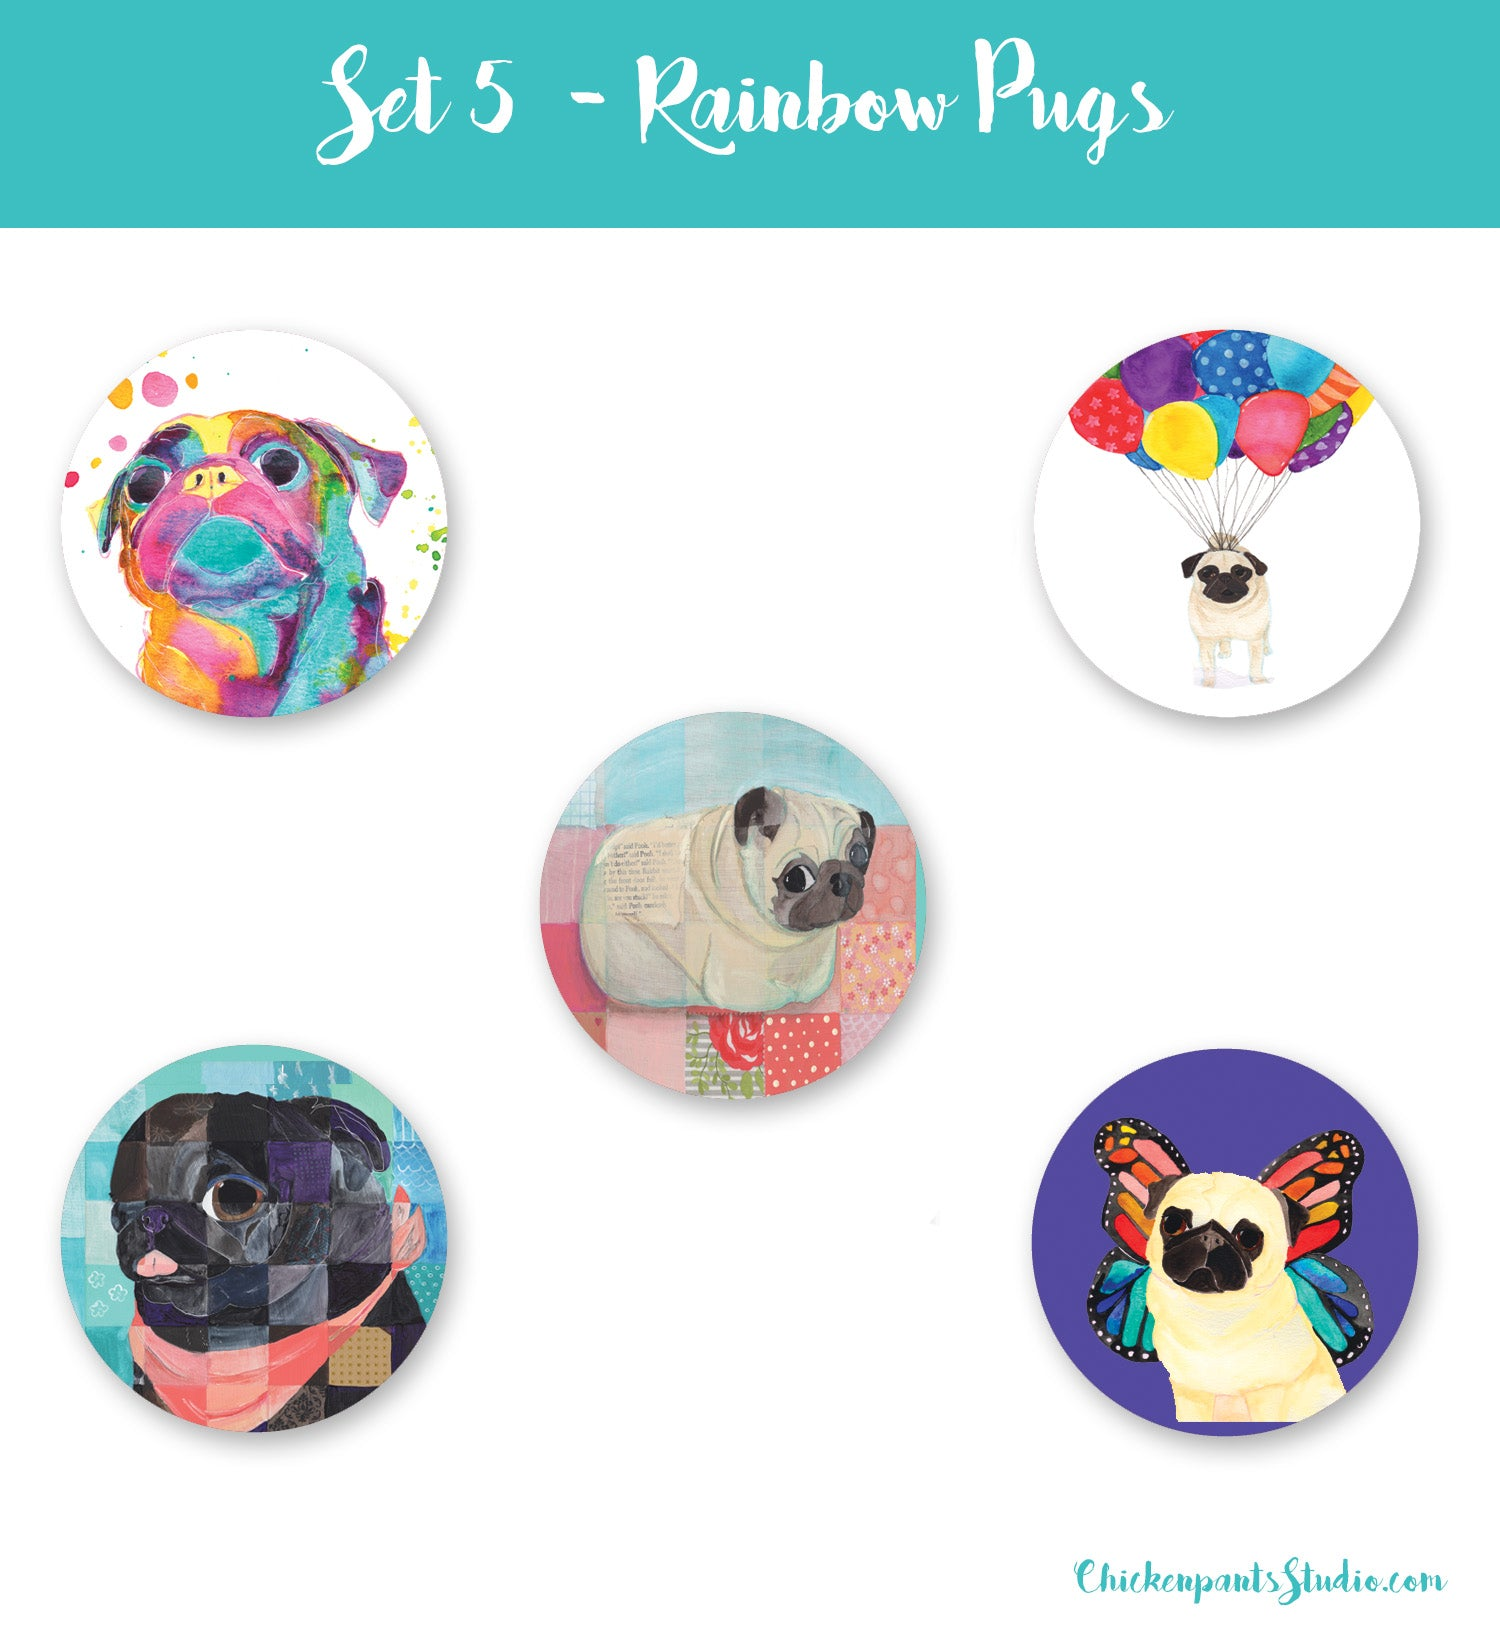 Rainbow Pugs - Button Set 5